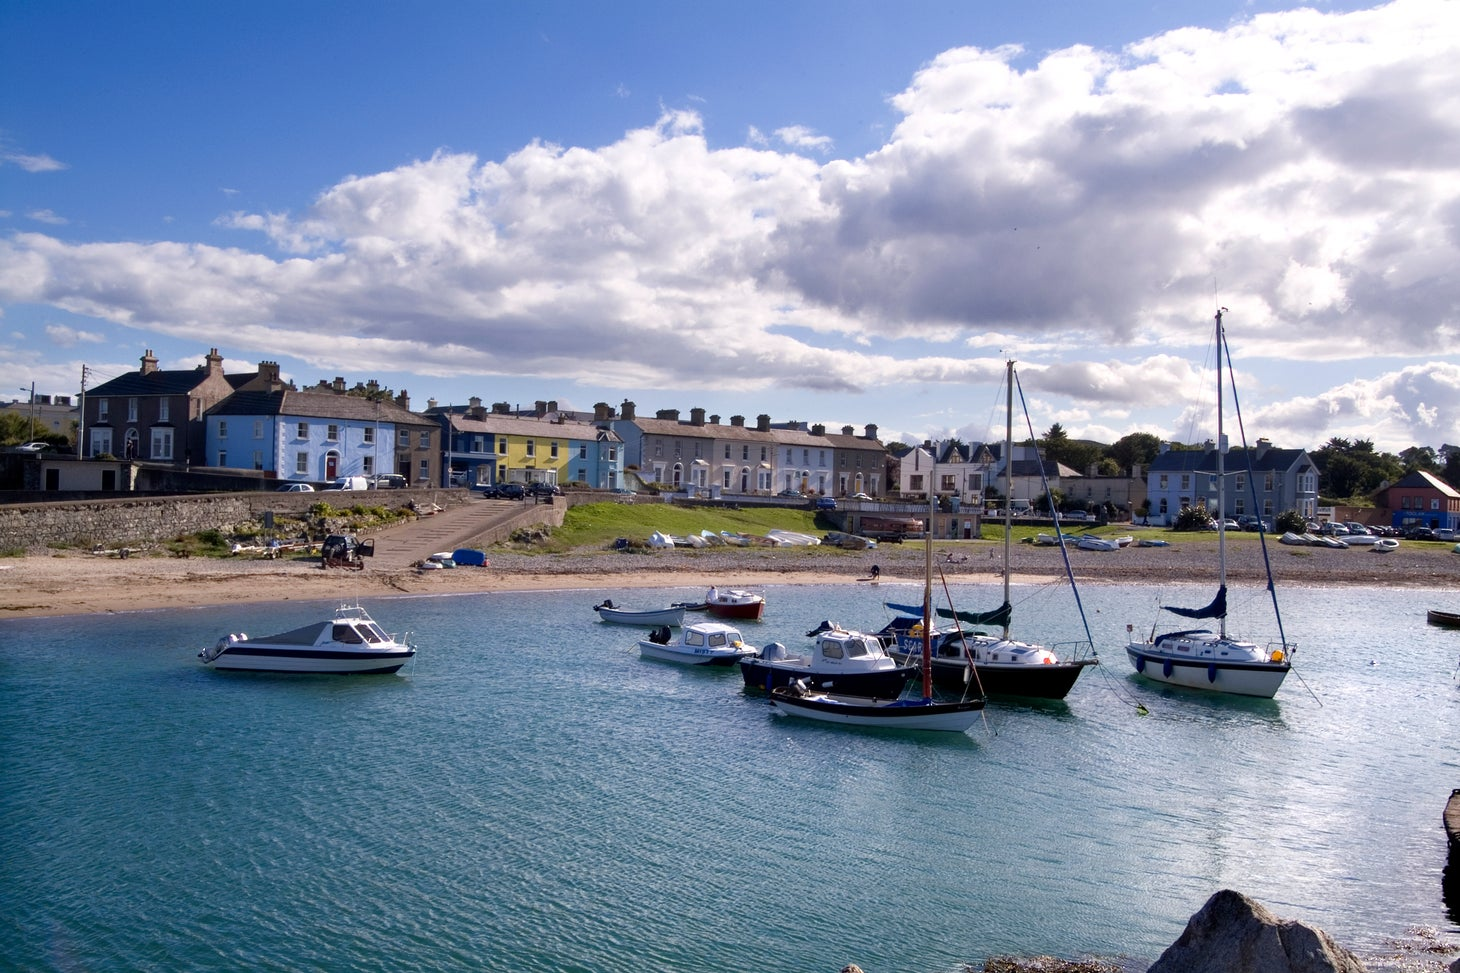 Watch the boats on the clear blue waters at Greystones Harbour.